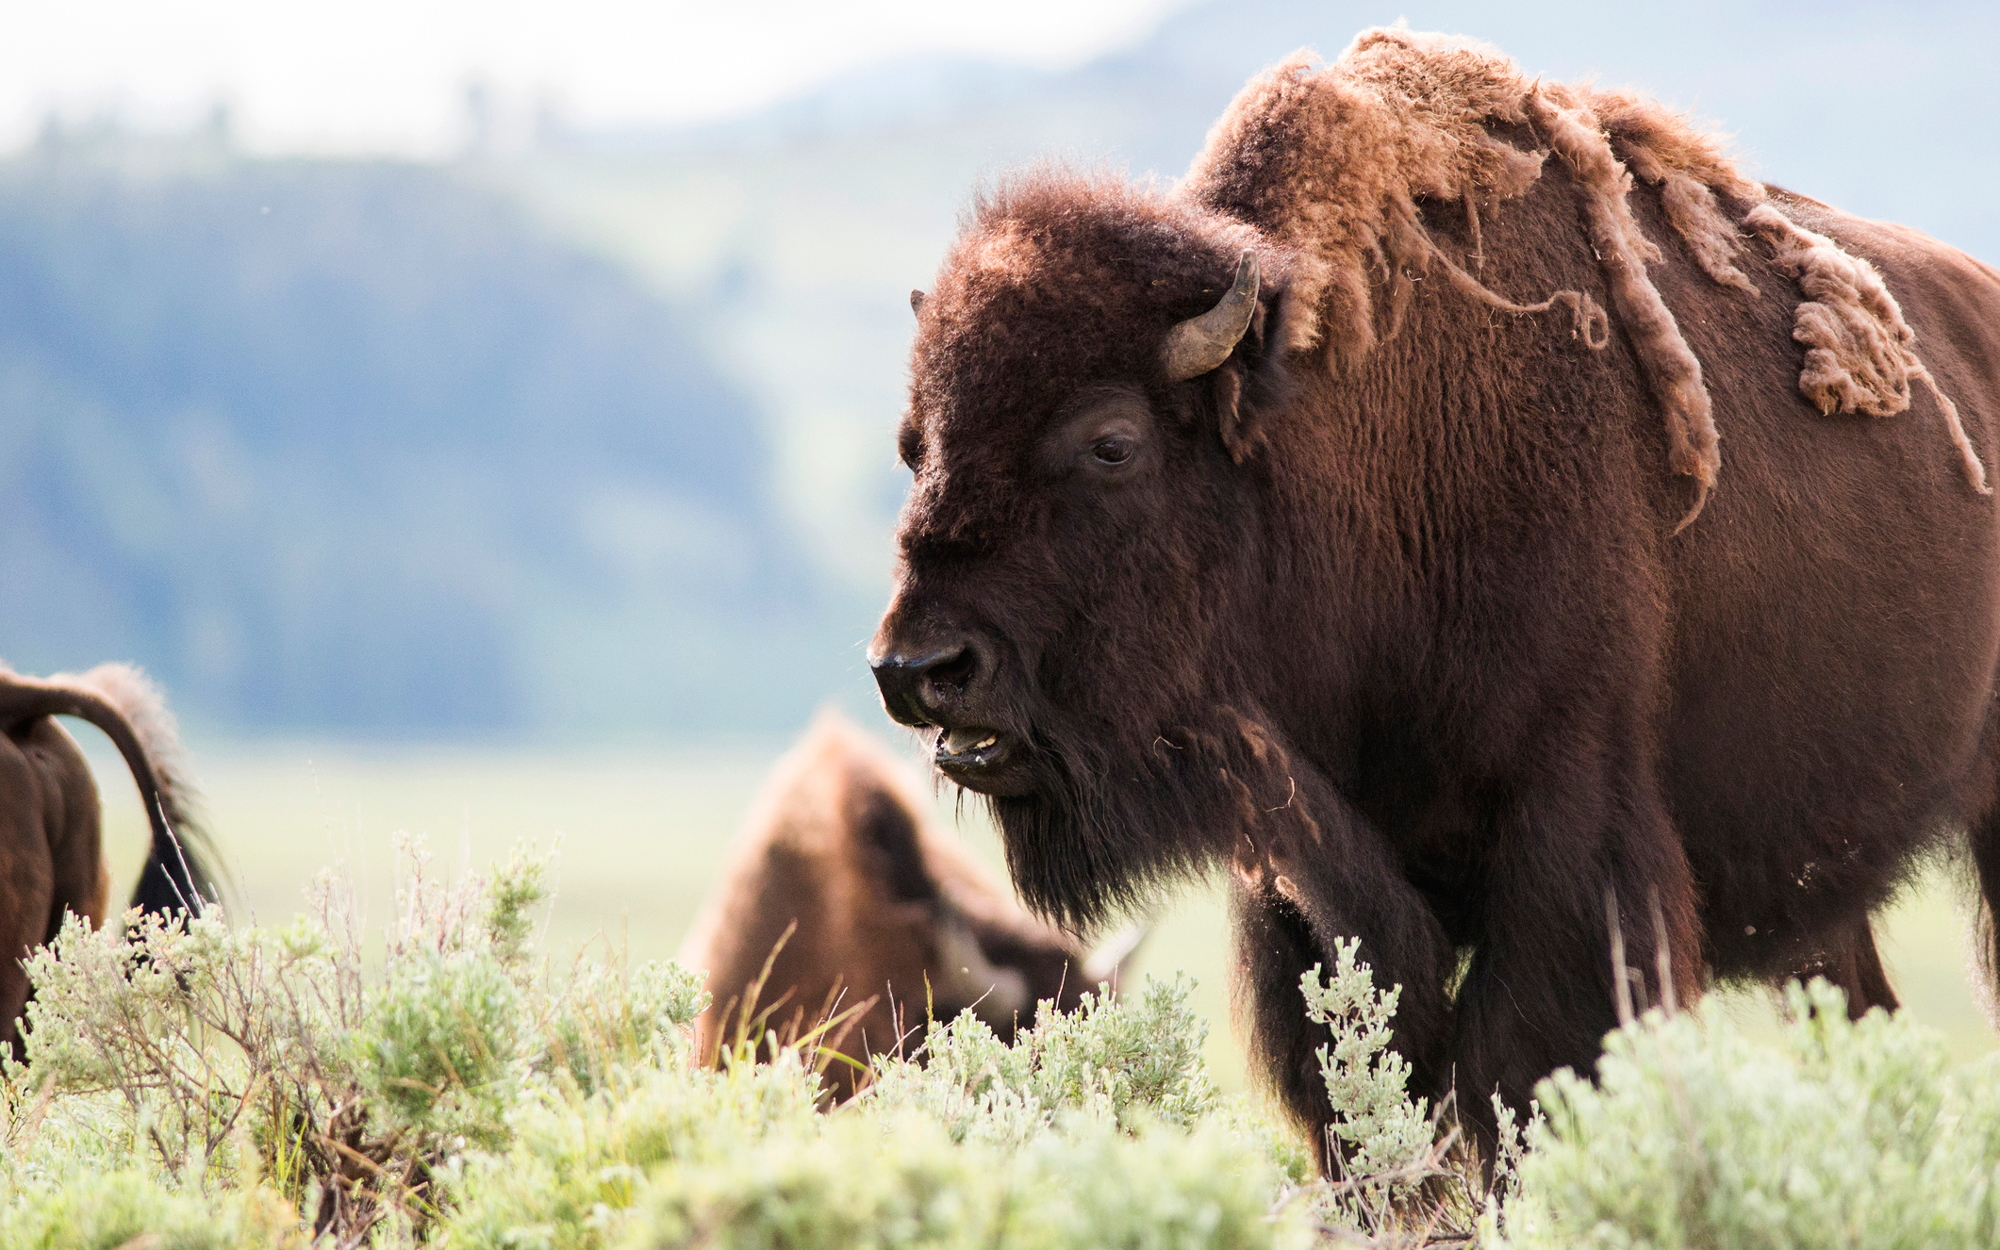 Yellowstone Gets a New Sign to Warn Visitors About Bison